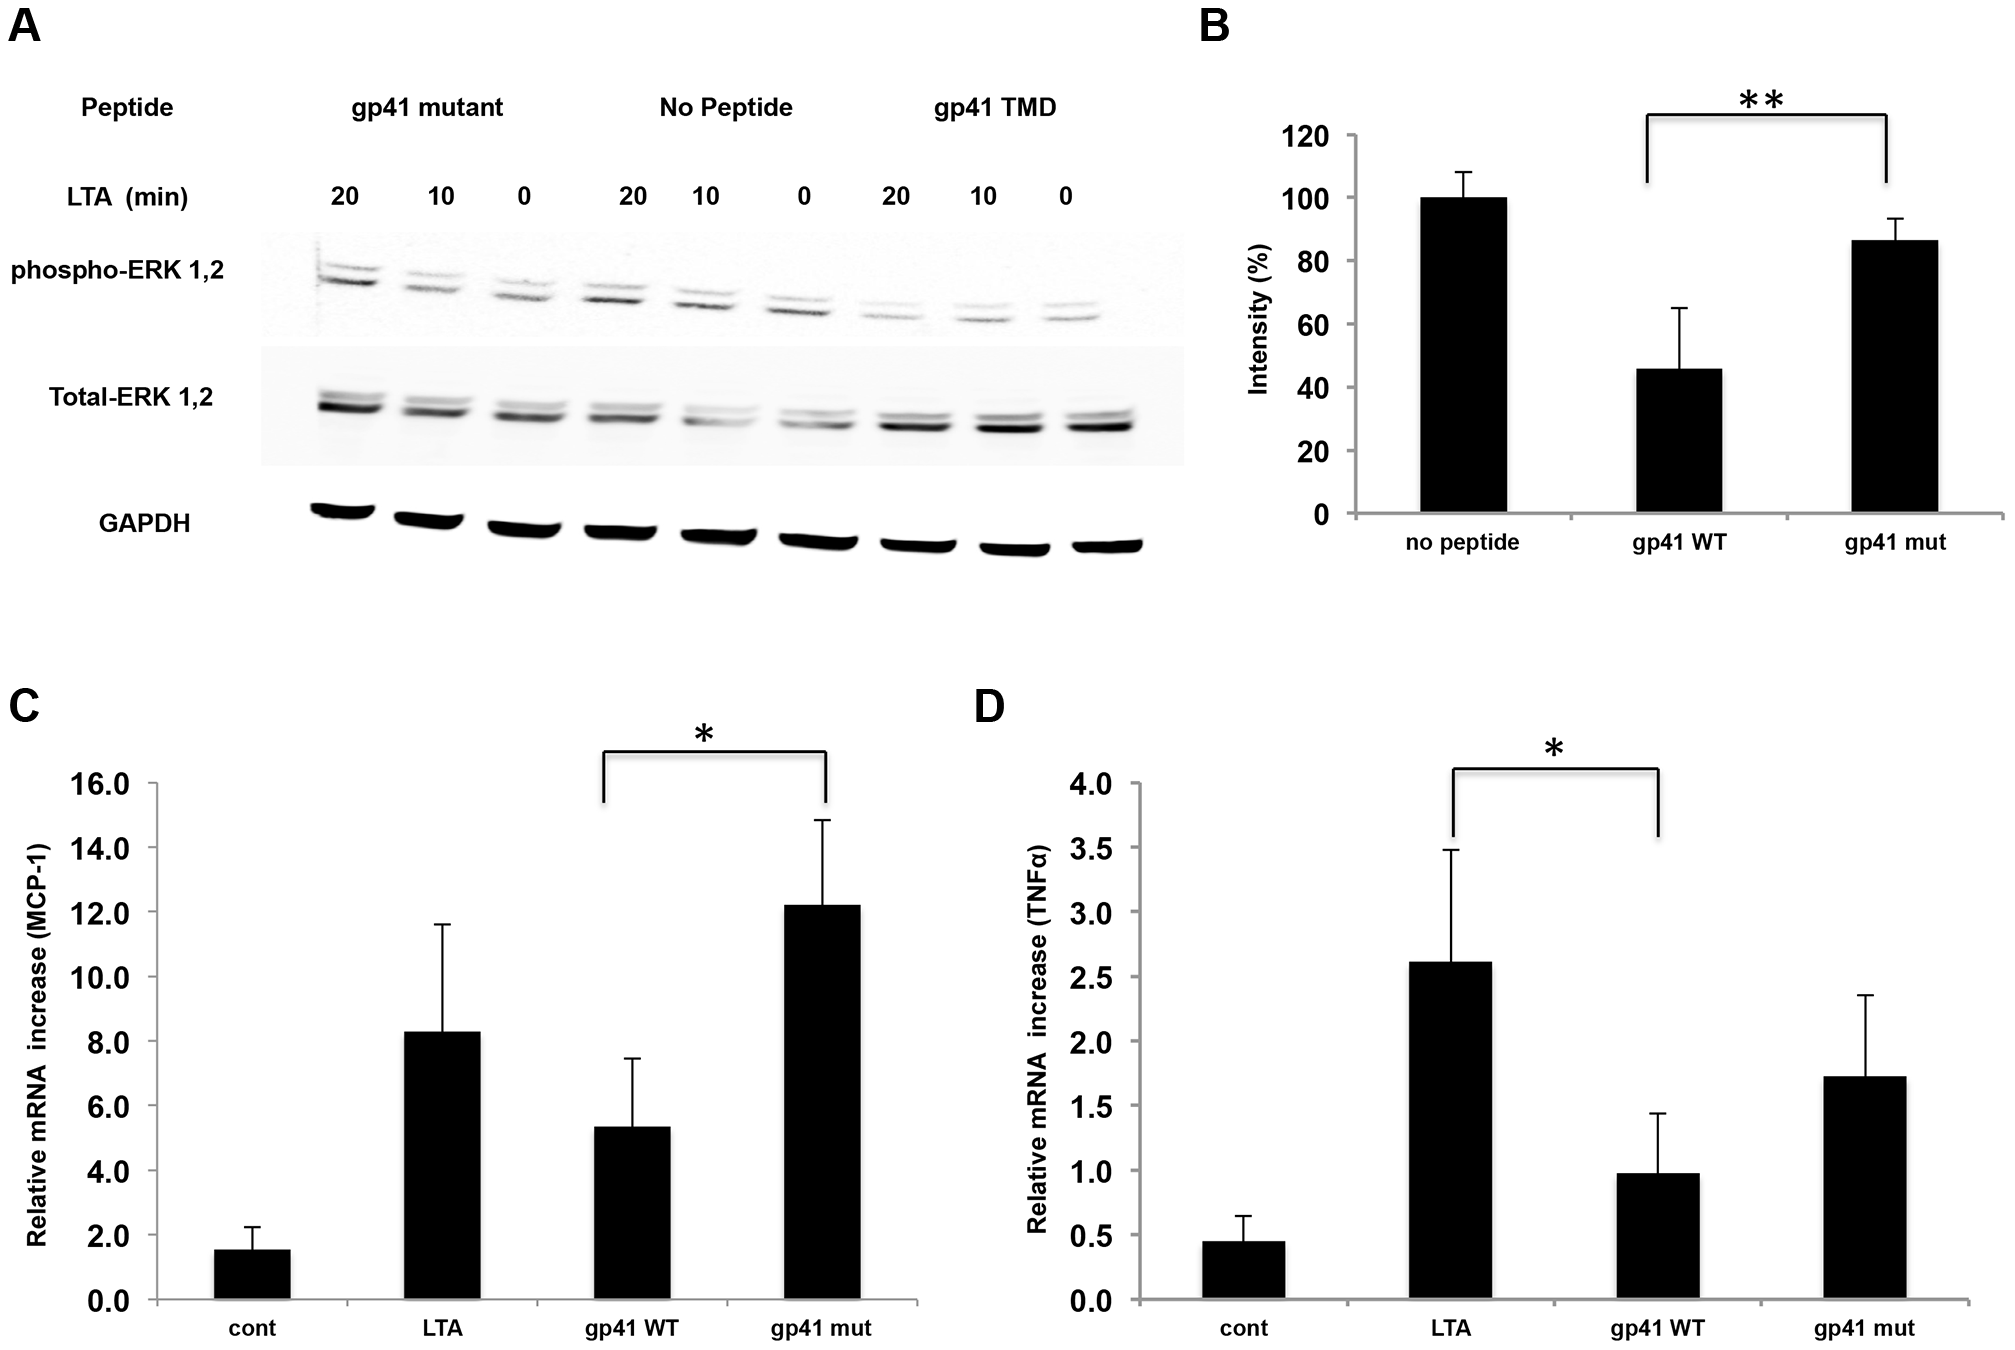 The gp41 TMD inhibits TLR2 induced signaling through ERK1,2 and cytokine secretion.